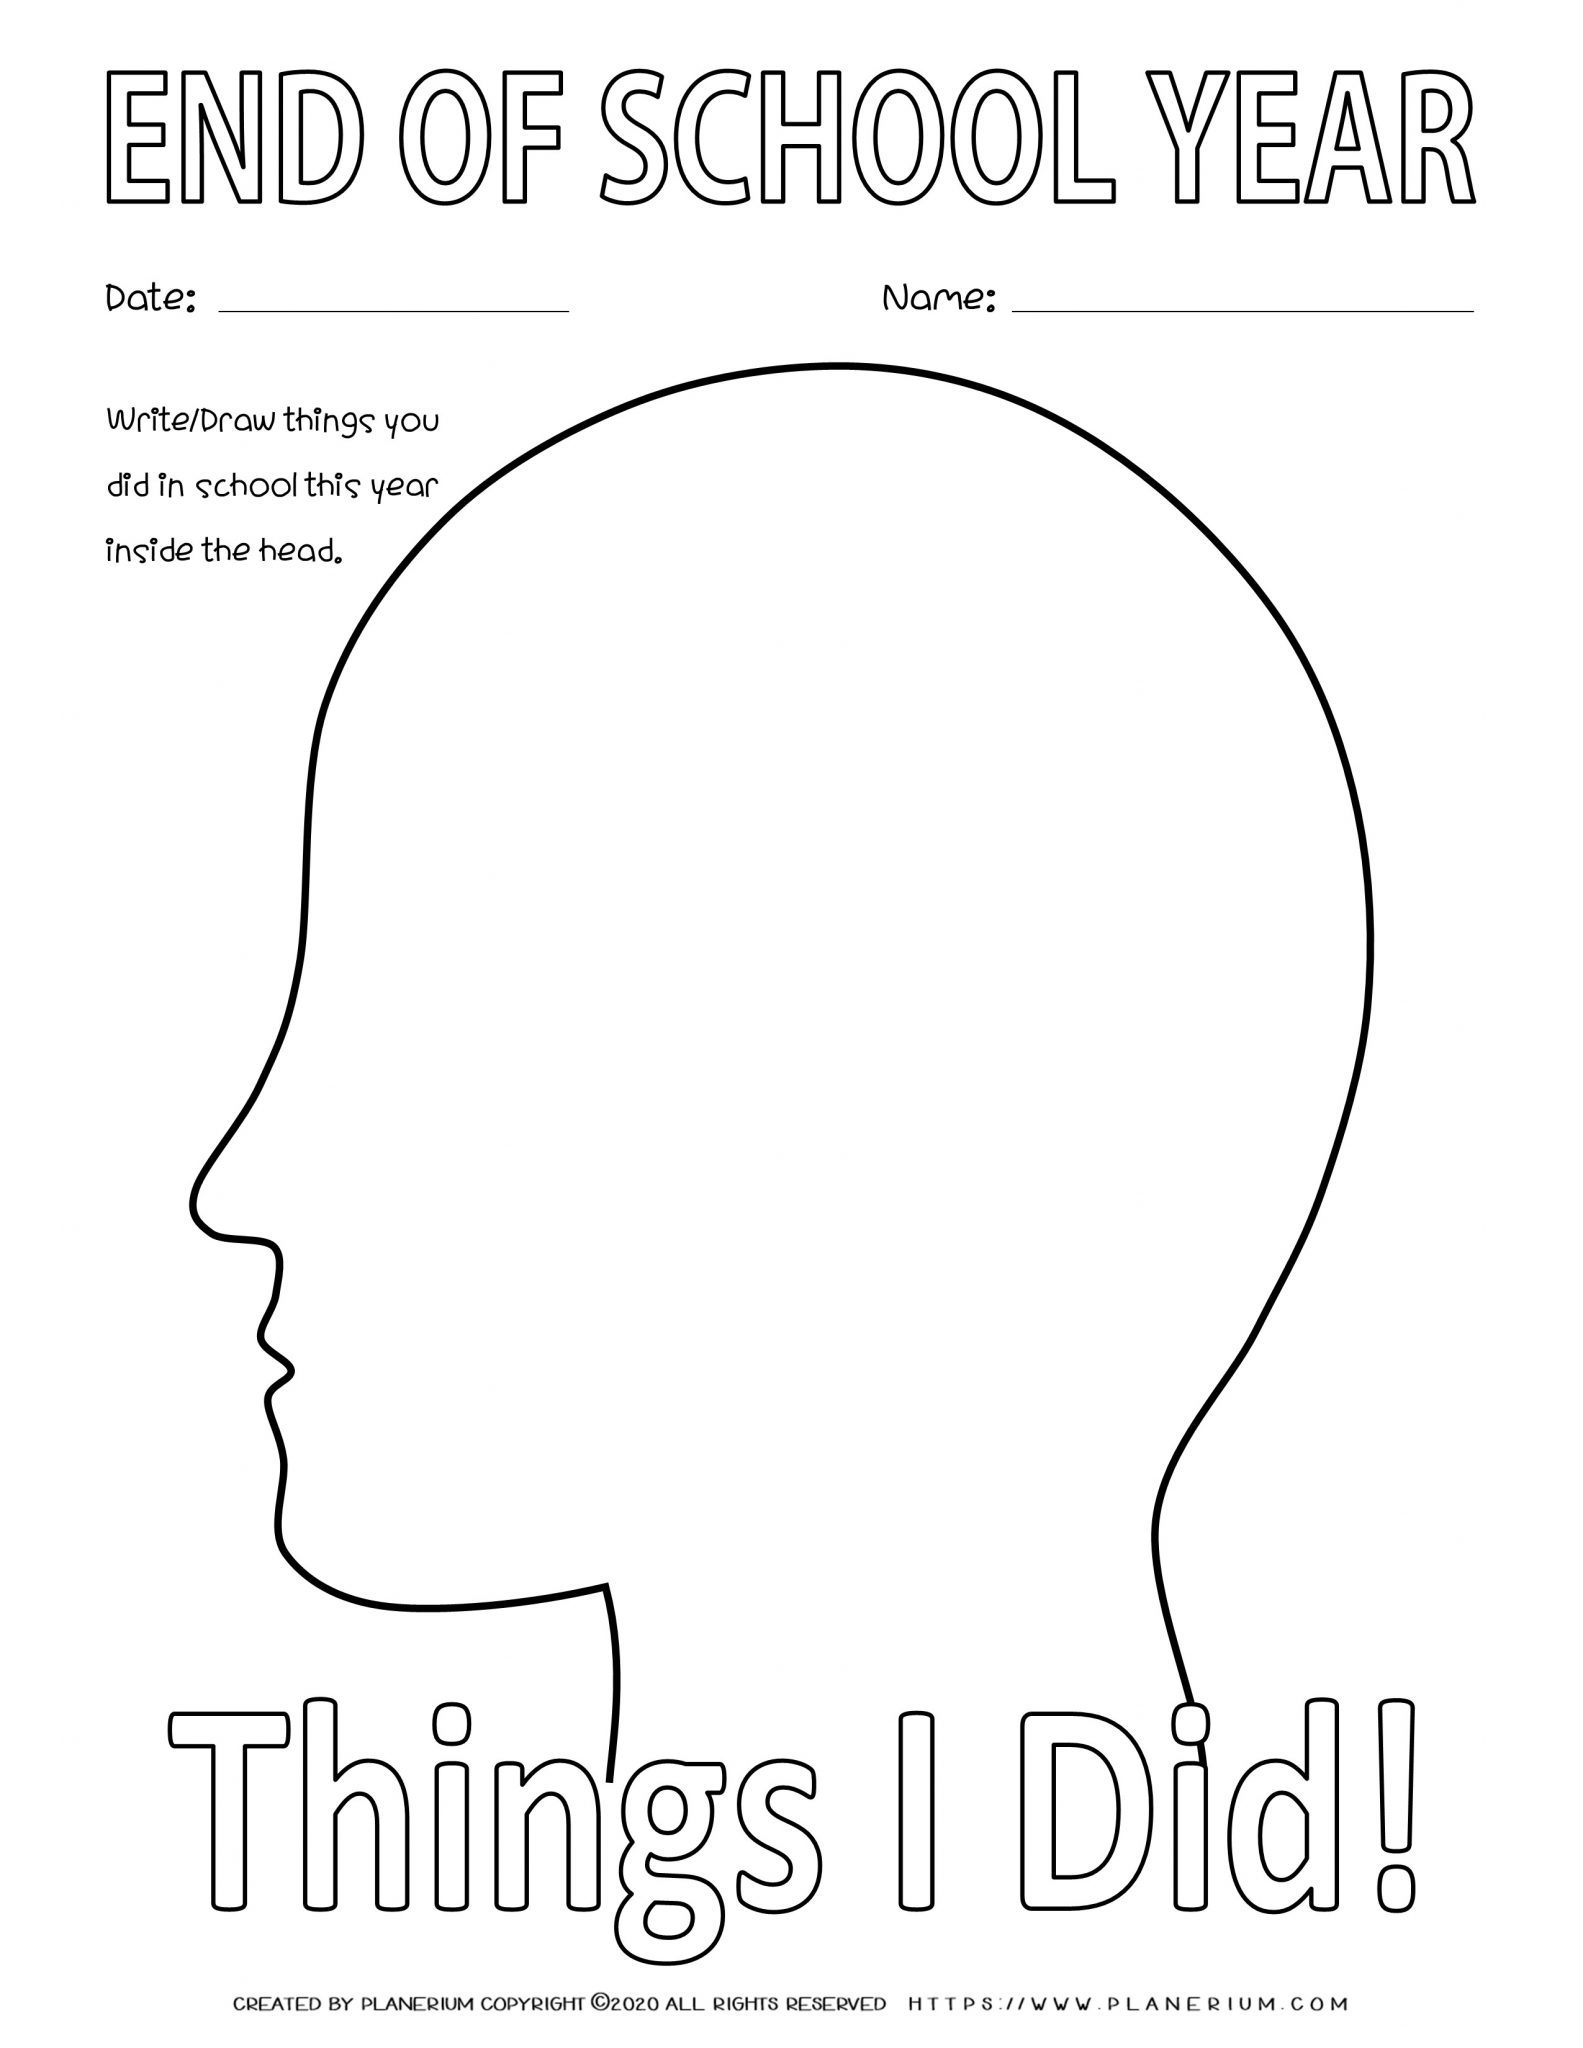 End of Year - Worksheet - Review Things I Did